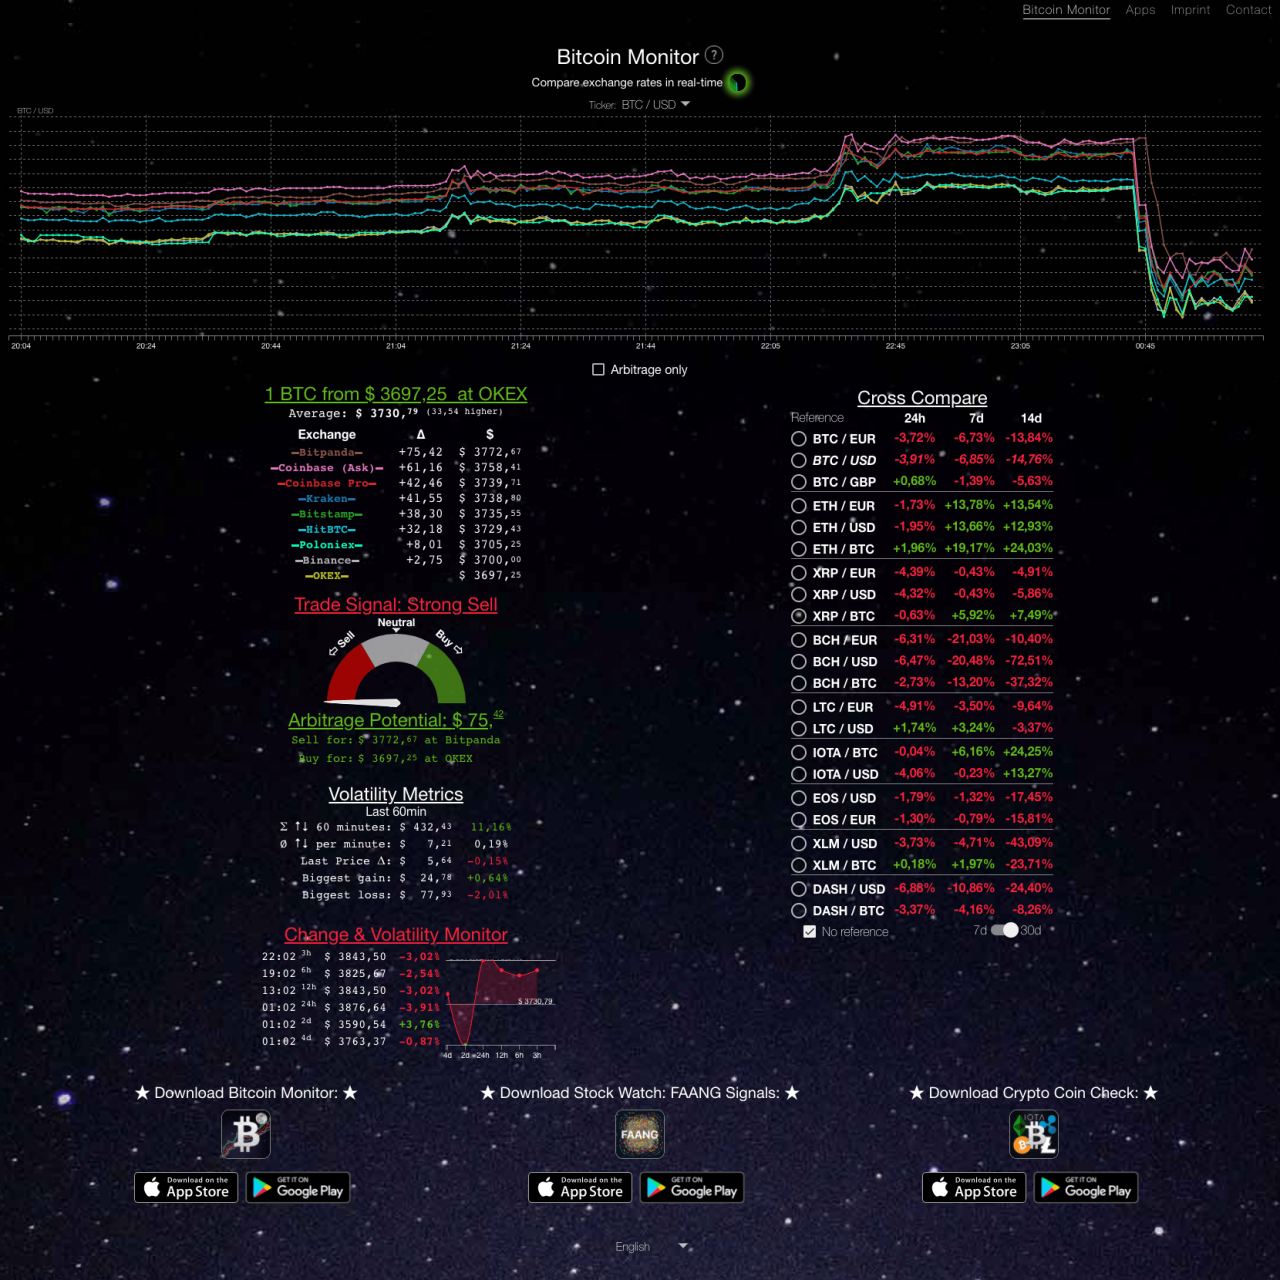 Visit Bitcoin Monitor at https://bitcoinmonitor.app